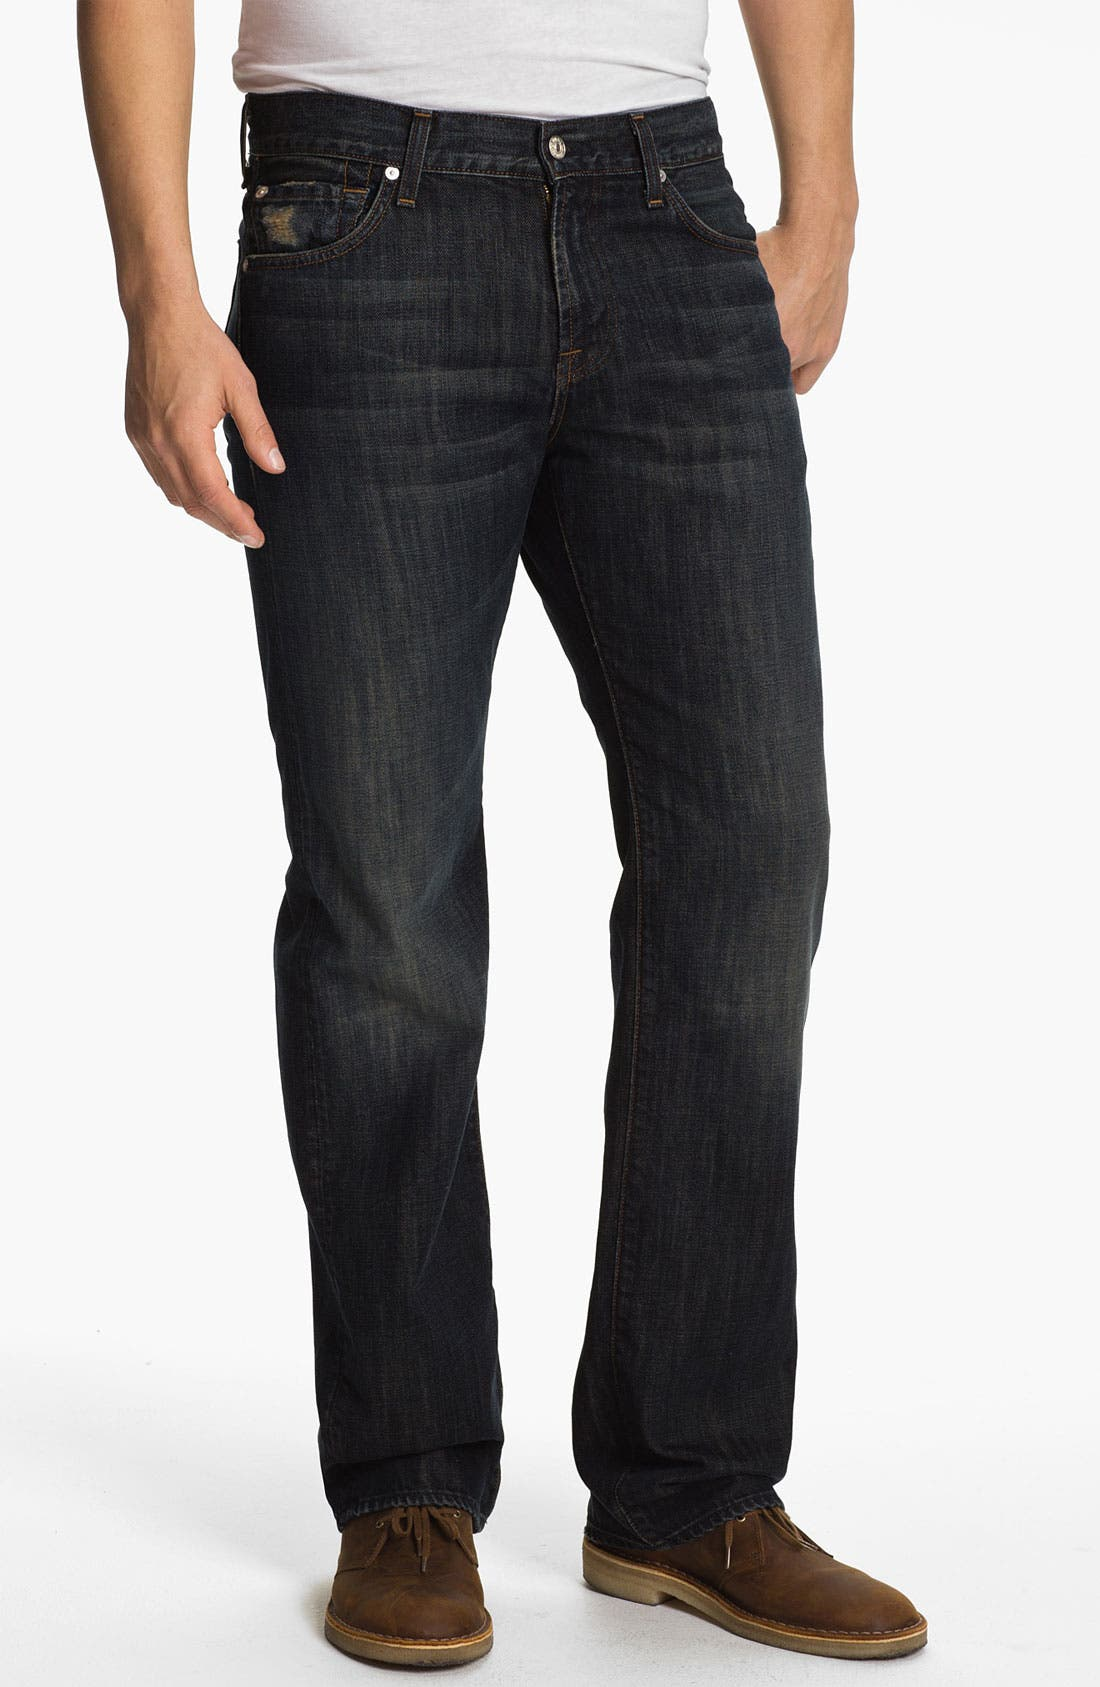 Alternate Image 1 Selected - 7 For All Mankind® 'Austyn' Relaxed Straight Leg Jeans (Montana)